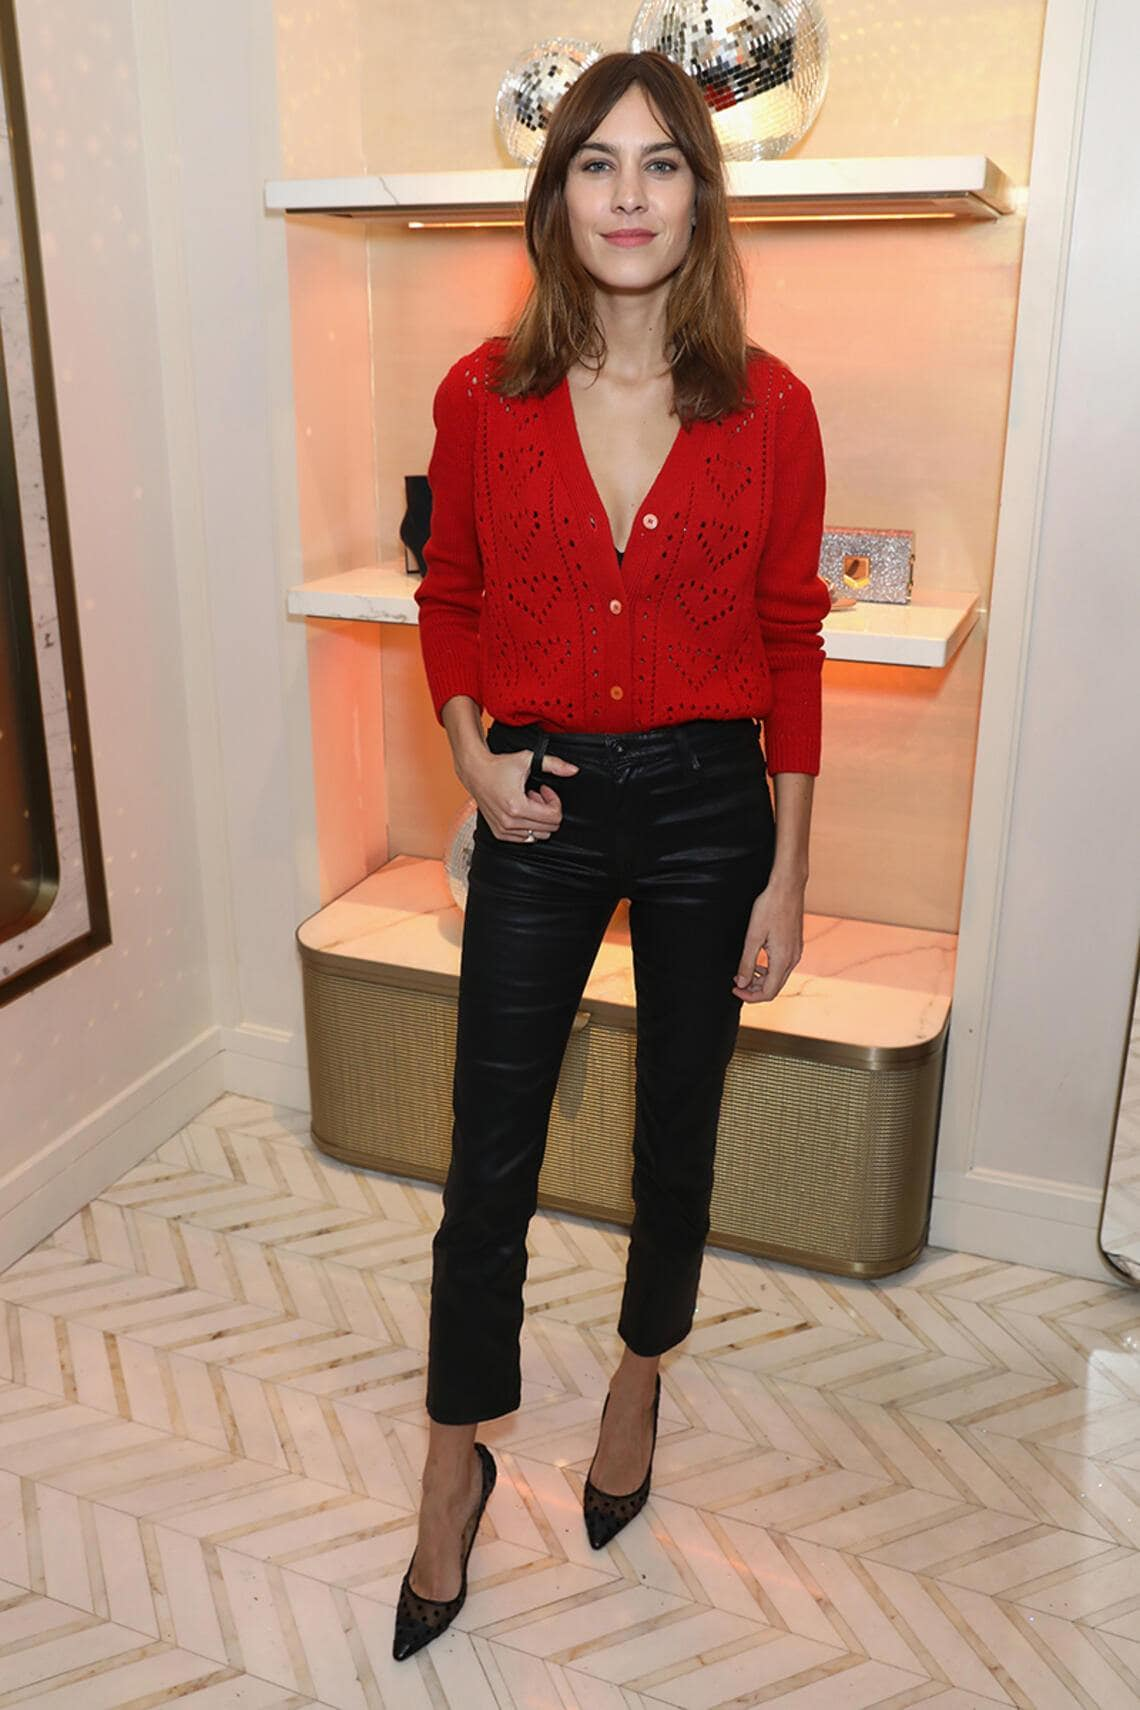 Alexa Chung, Designerin - Style of the Day |Style